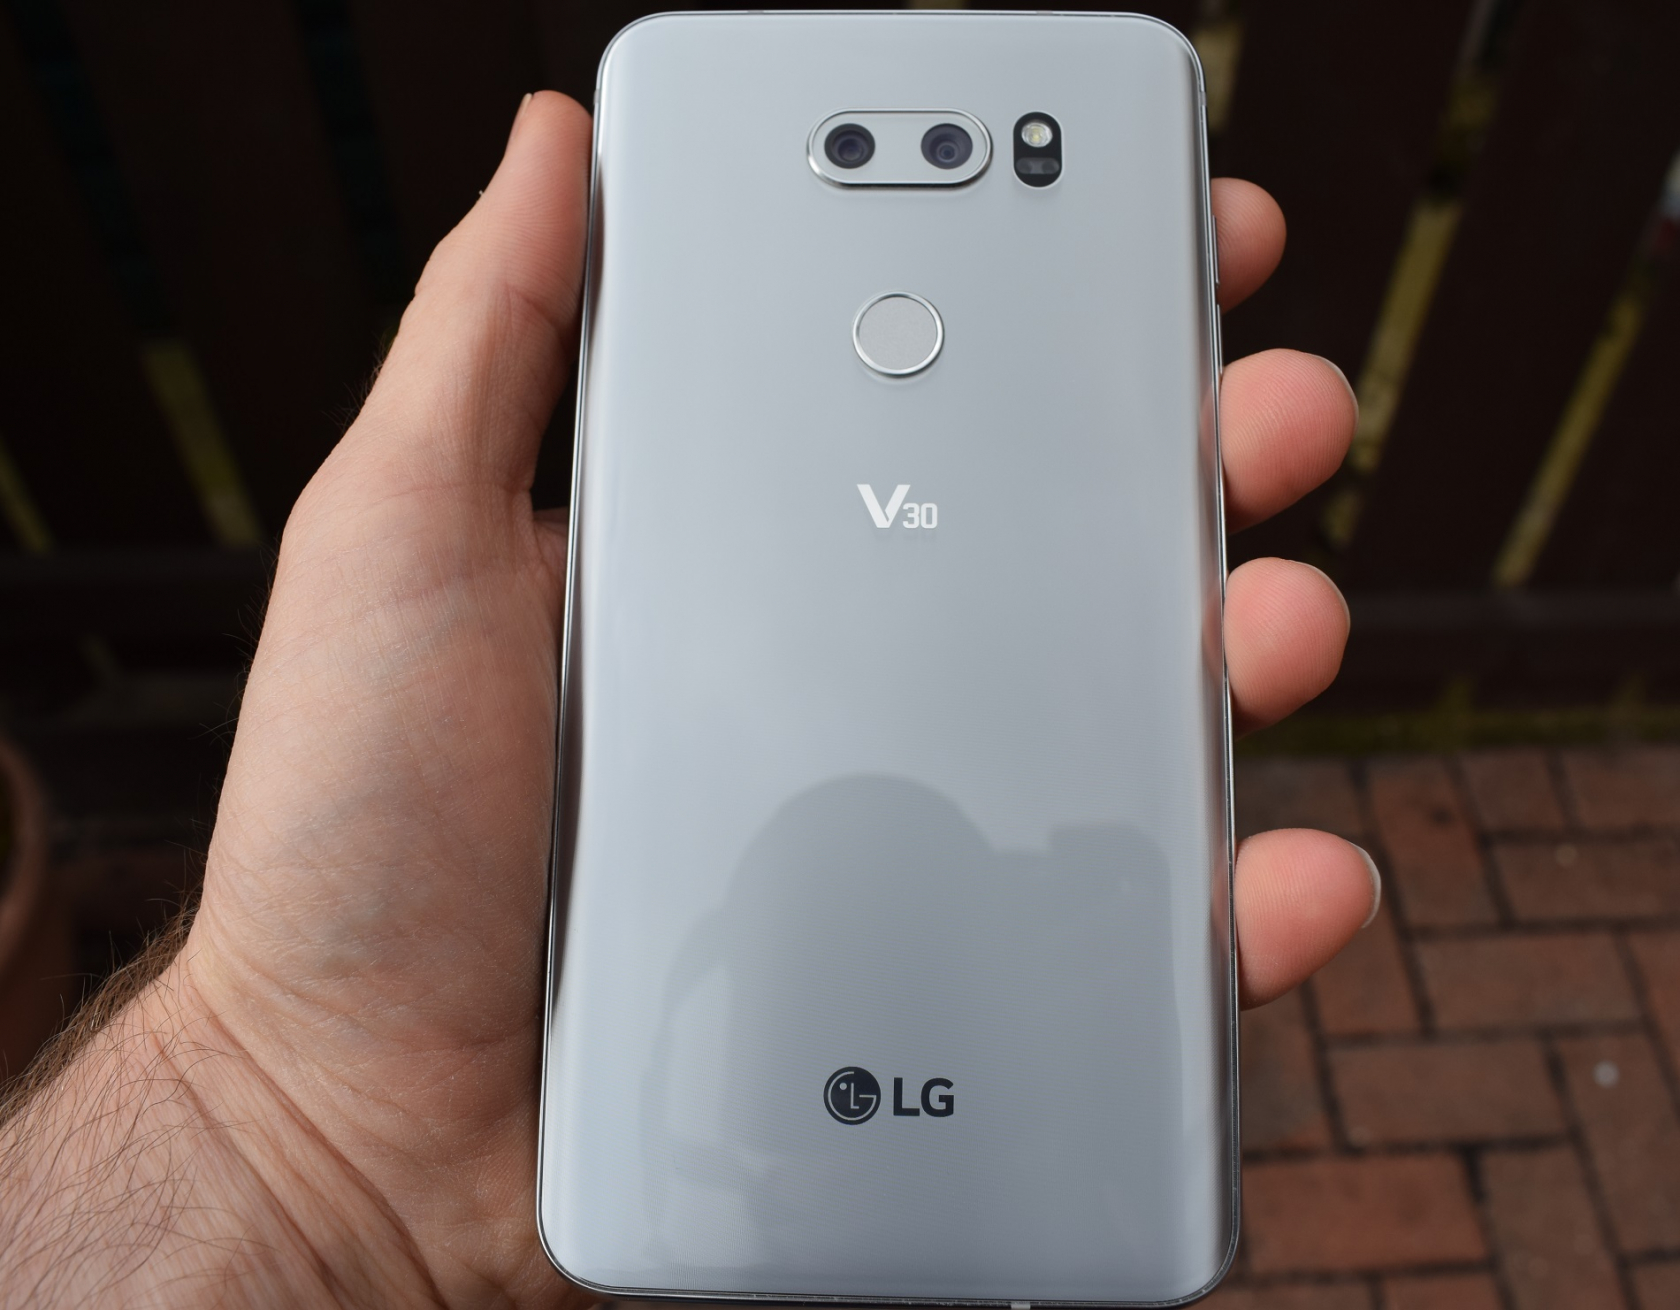 LG V30 hands-on: Believe the hype - TechSpot